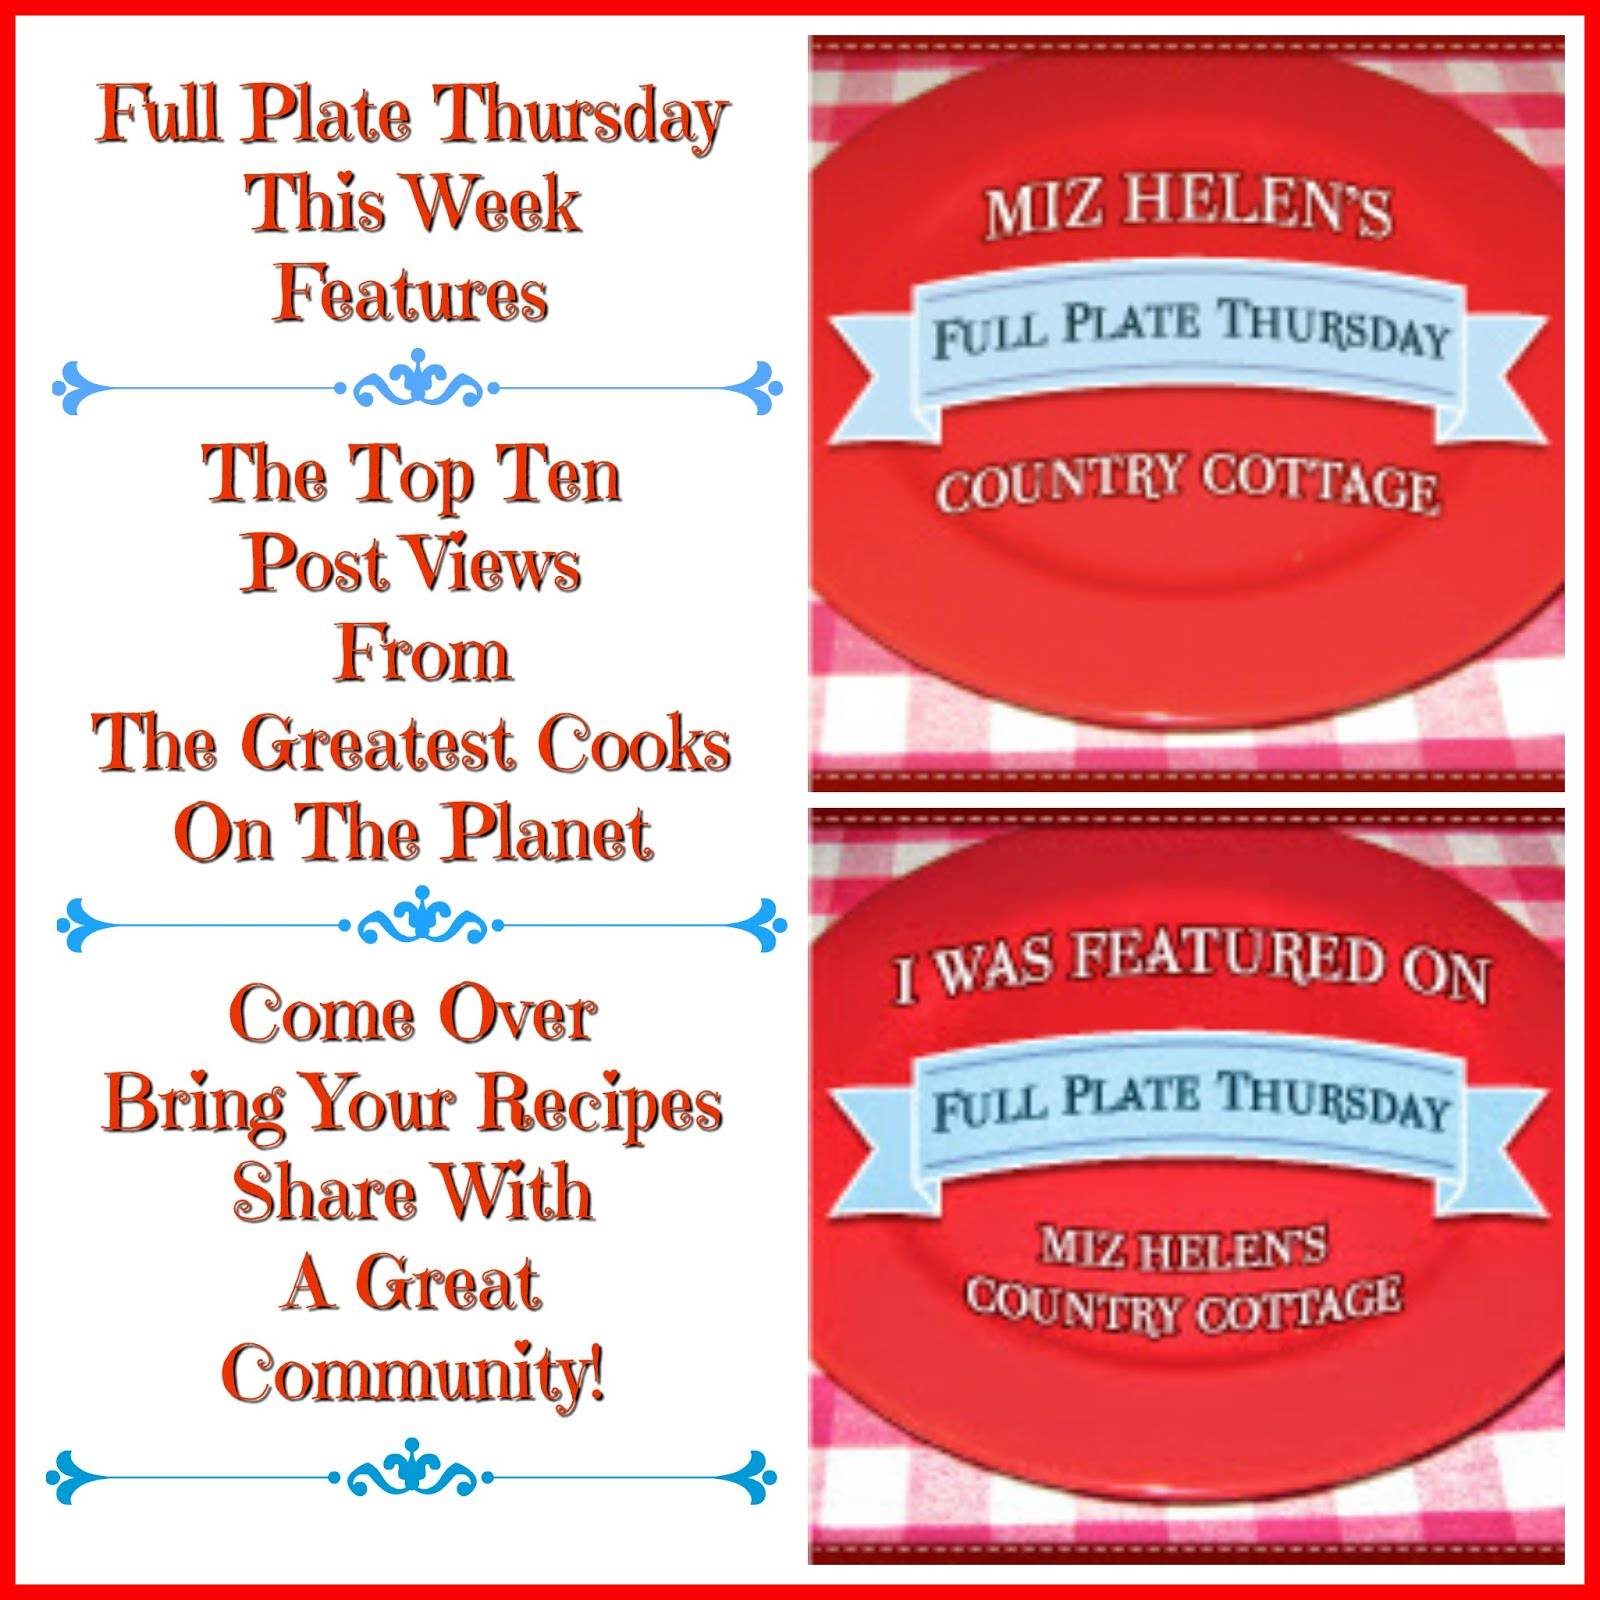 Full Plate Thursday,429 Current Party